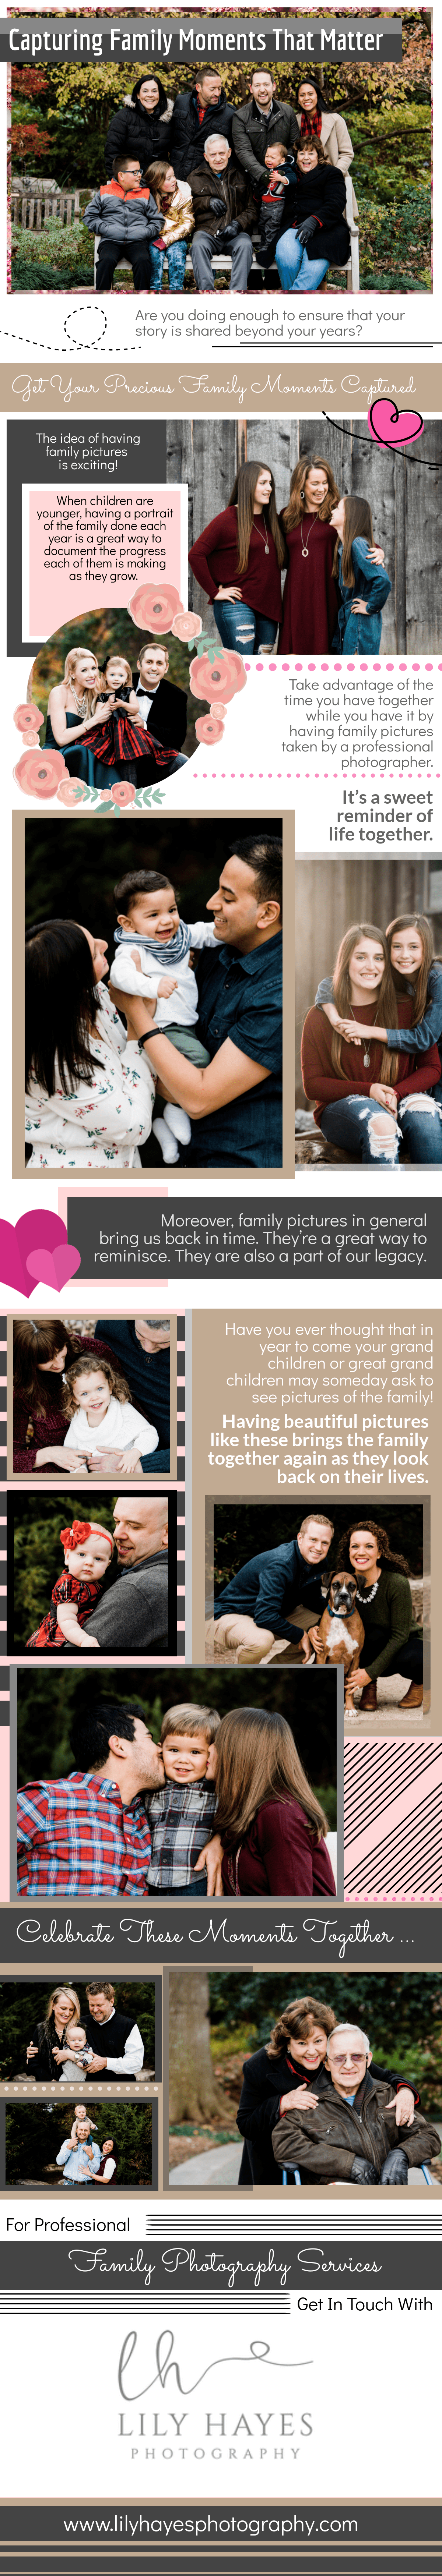 Capturing Family Moments That Matter